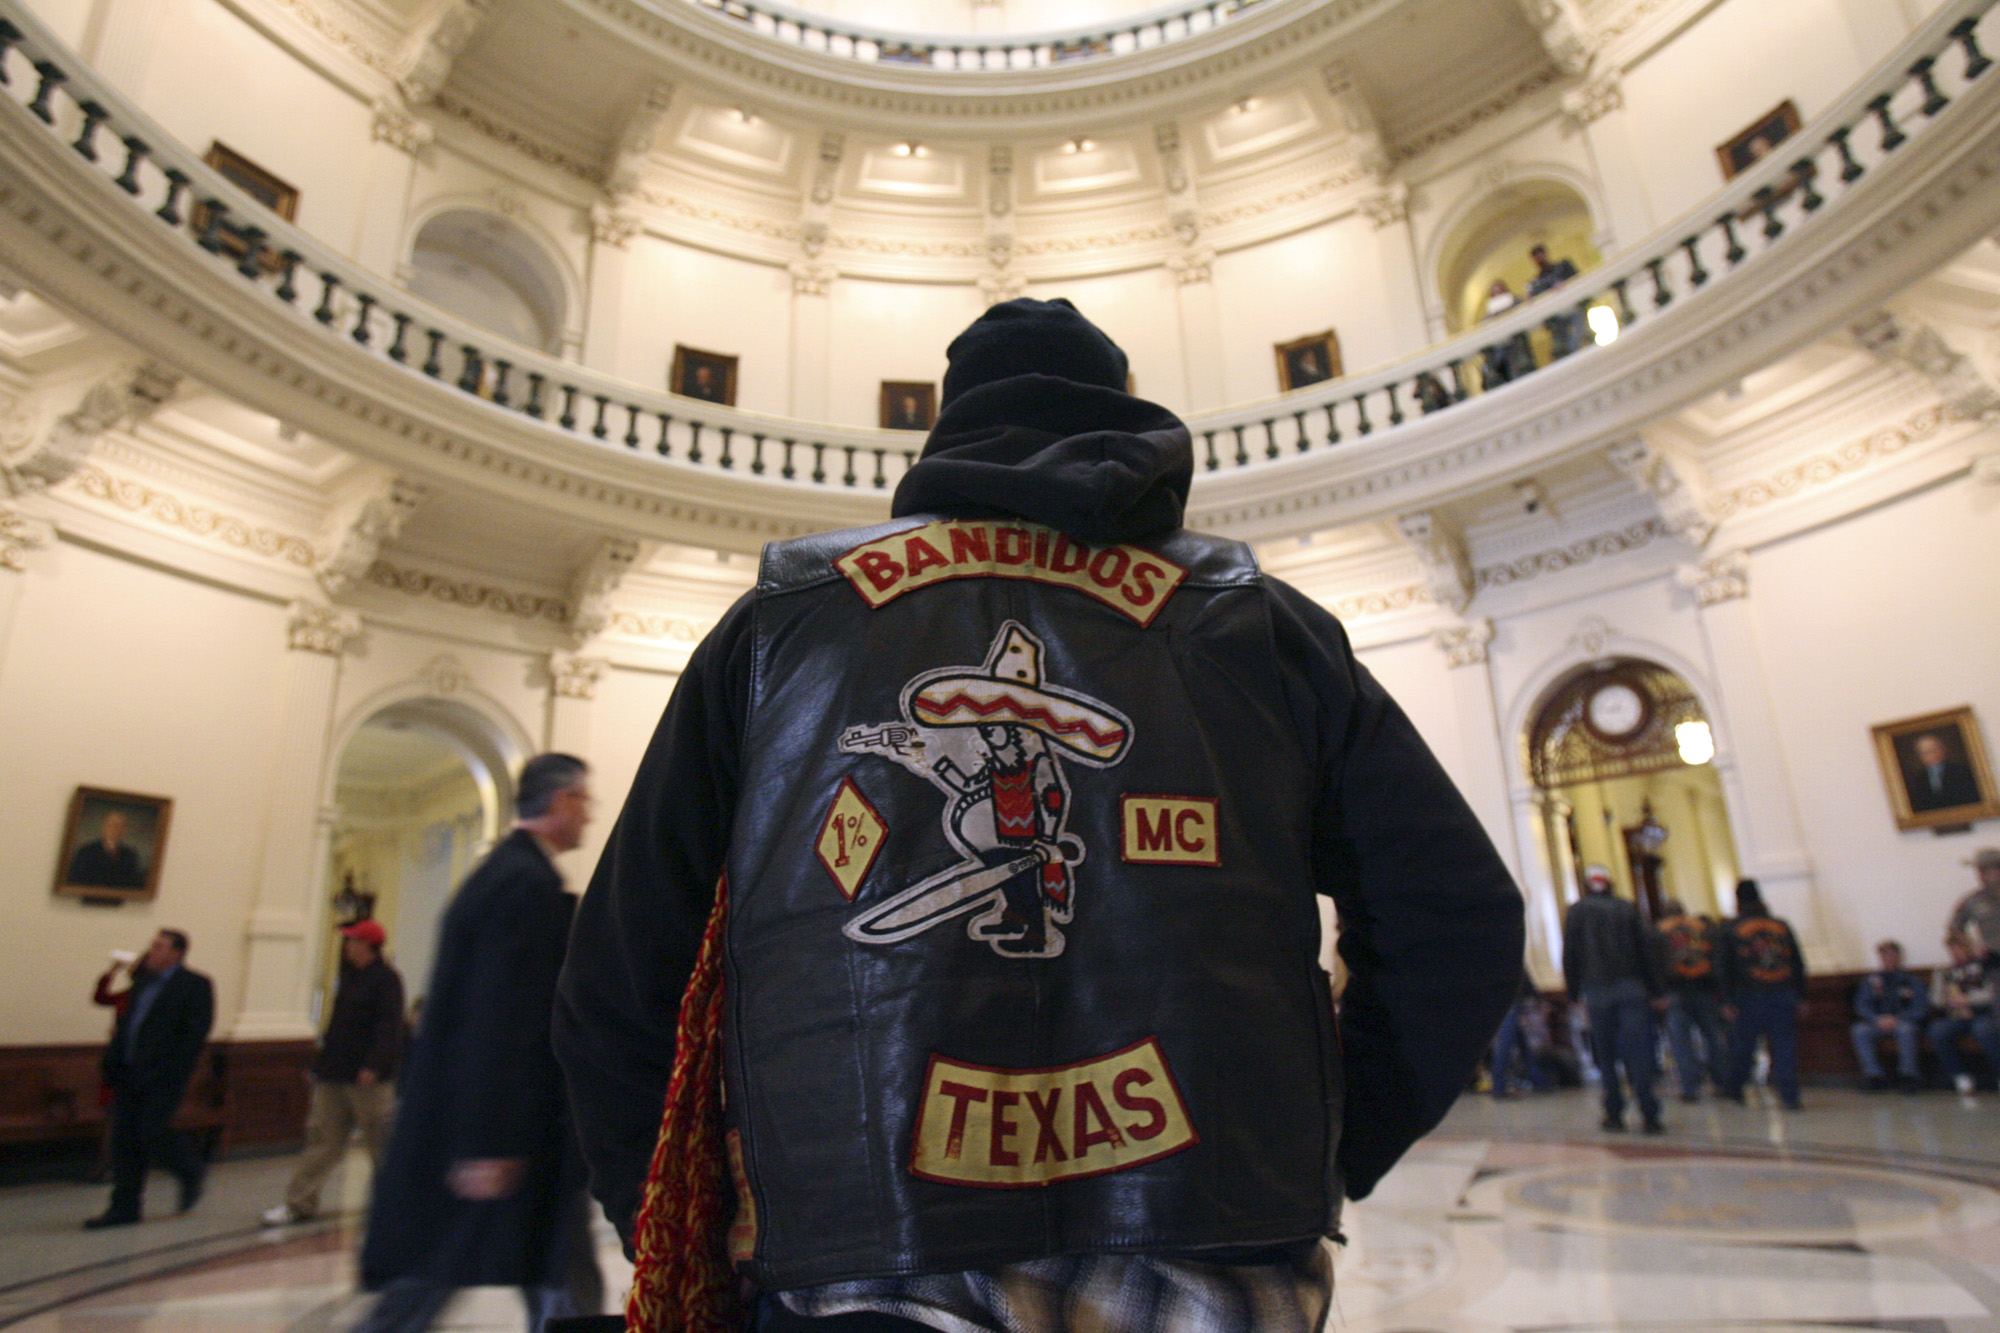 Gang or club?: For Bandidos, the distinction matters after